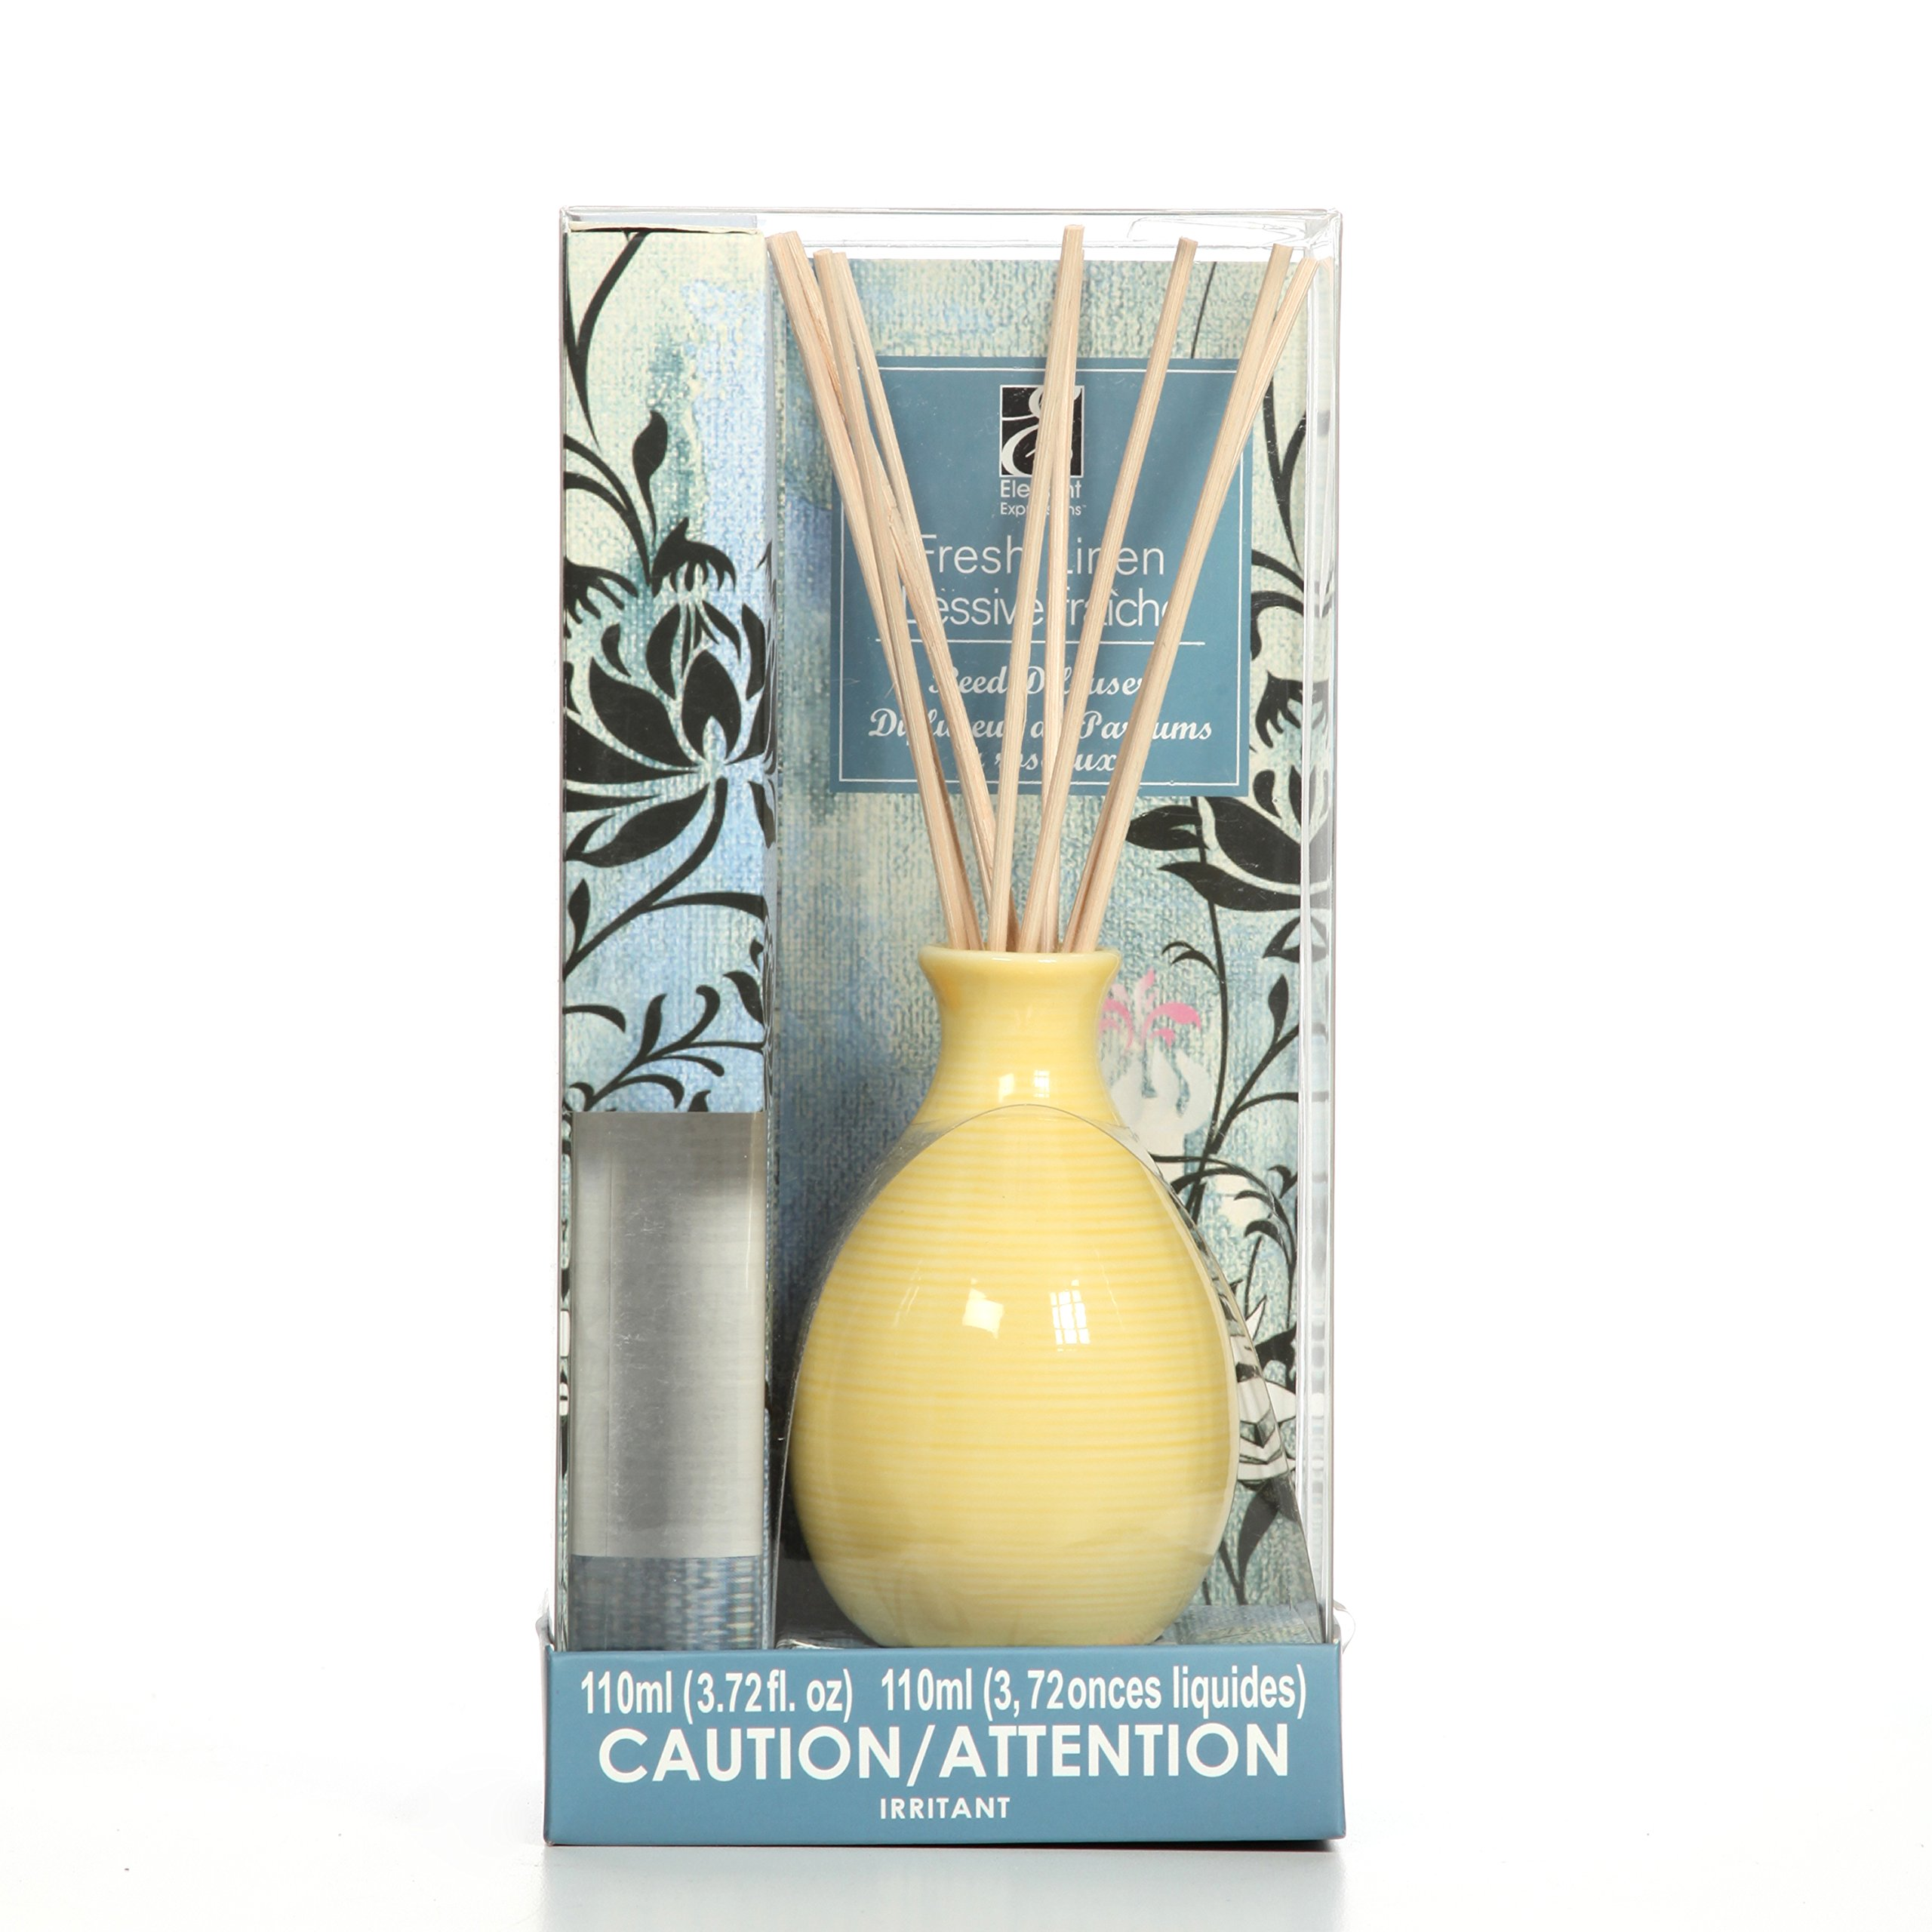 Hosley Aromatherapy Deal Linen Scent Diffuser Oil with Ceramic Bottle Plus Reed Sticks All in One! 110 ml. Bulk Buy. Ideal Gift for Weddings, Spa, Reiki, Meditation, Bathroom O4 by Hosley